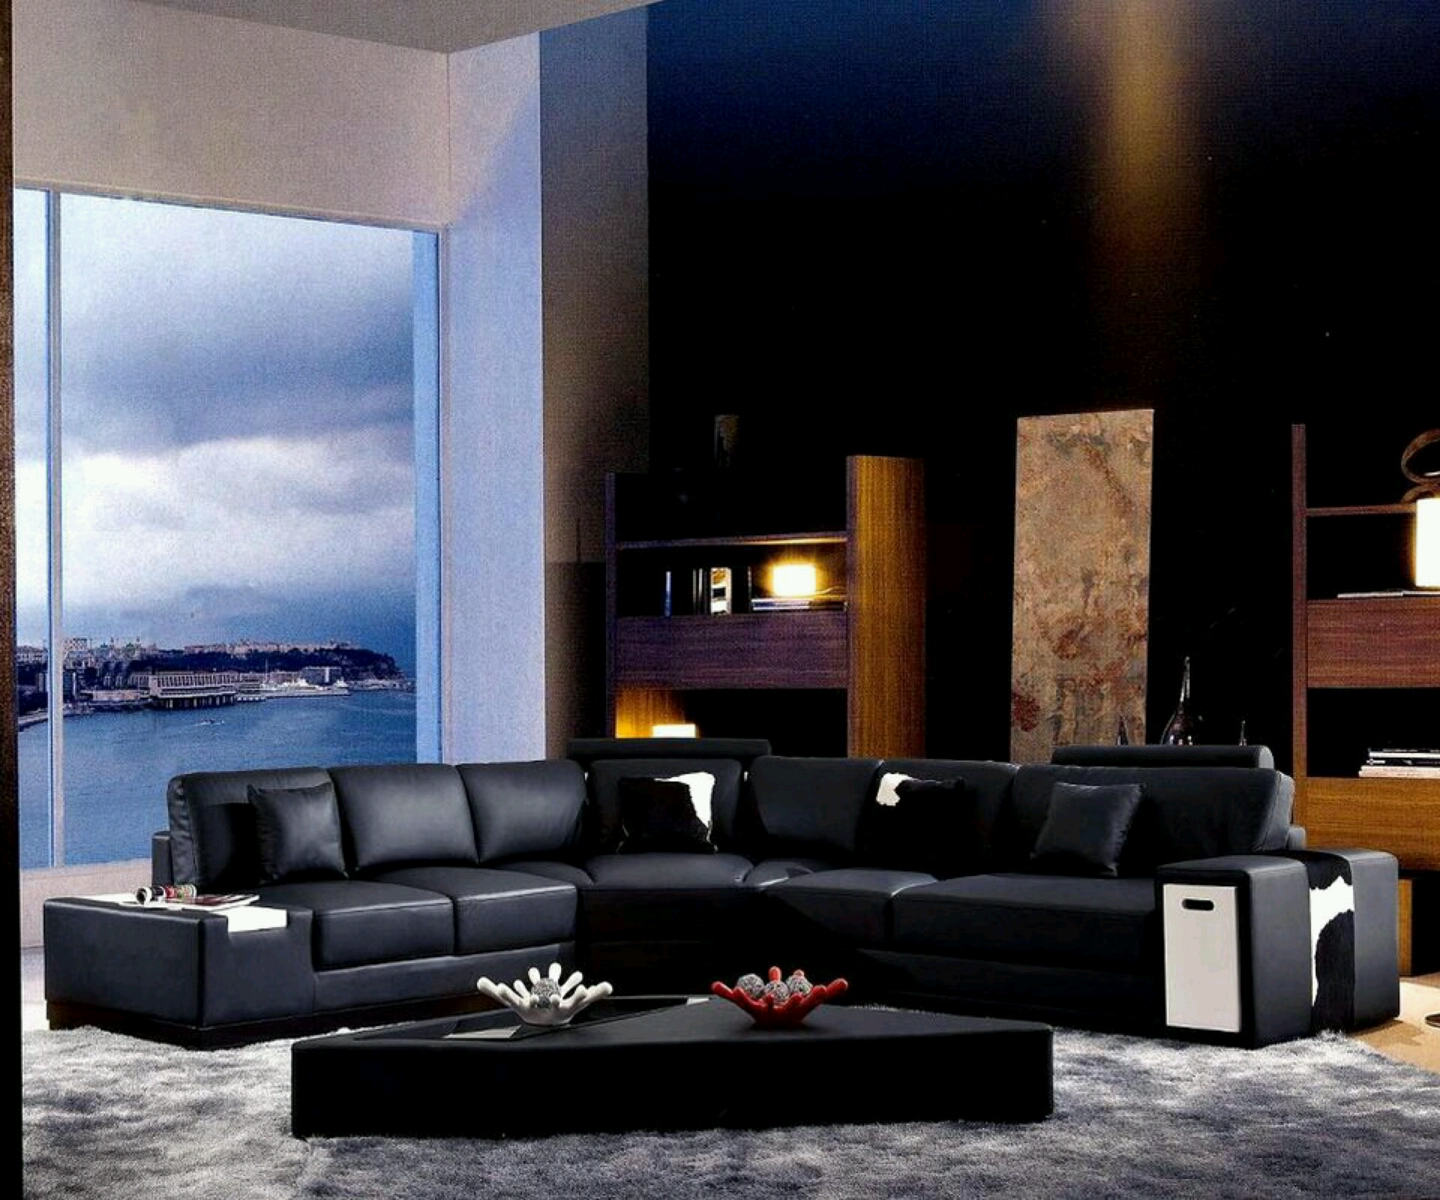 New home designs latest luxury living rooms interior modern designs ideas - Contemporary living room ideas ...